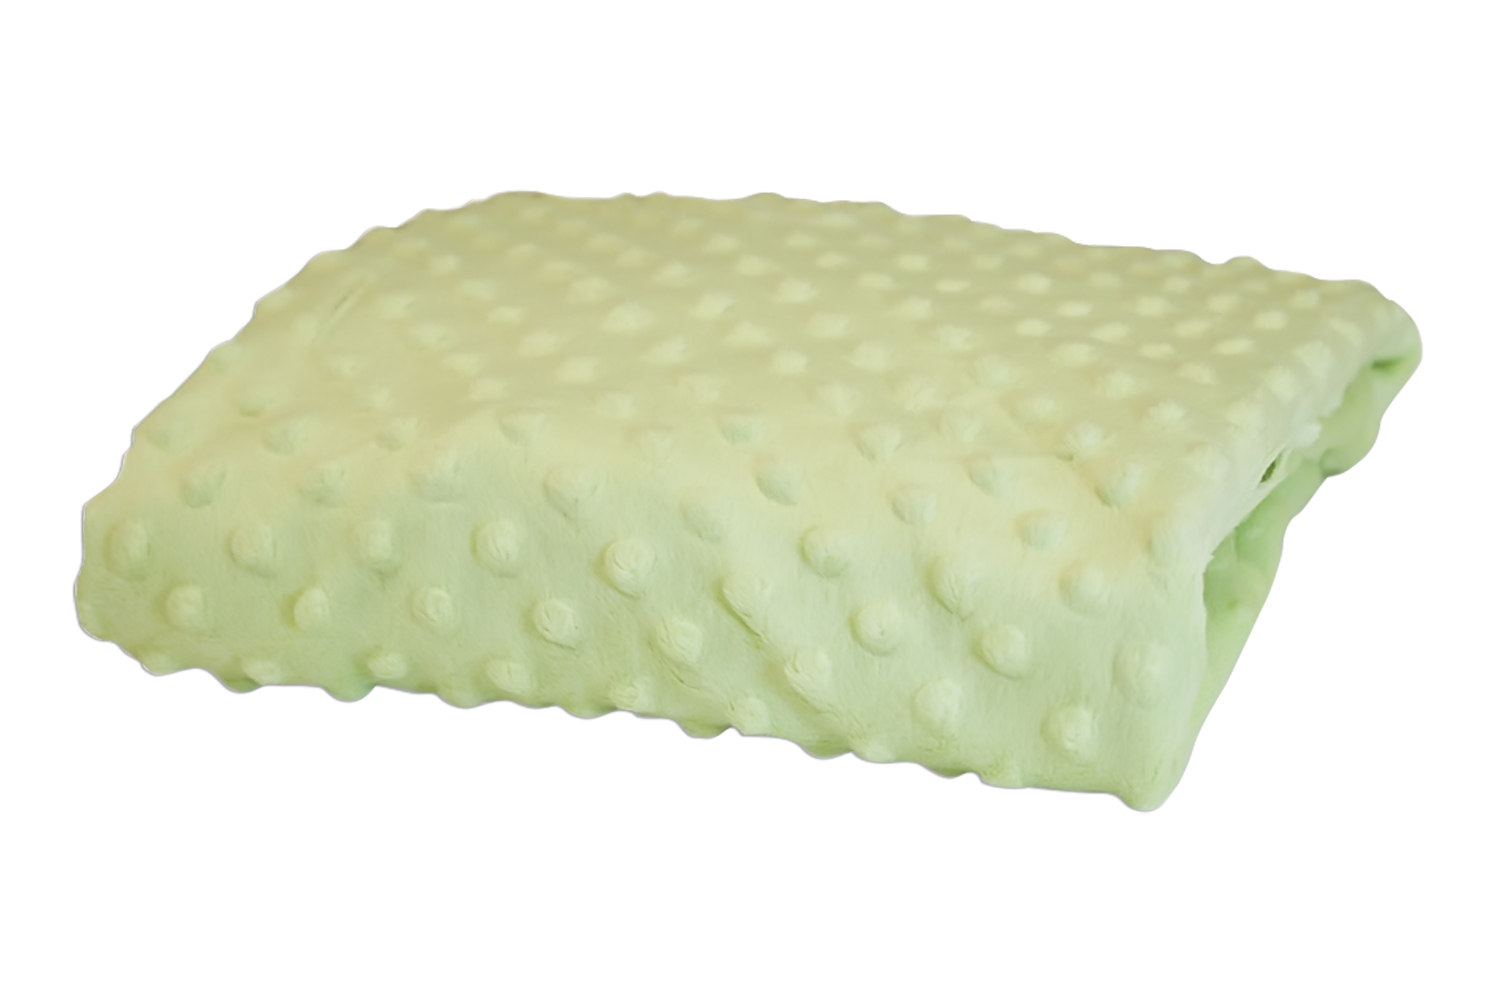 Rumble Tuff Kit Minky Dot Contour Changing Pad Cover - Standard, Mint Green